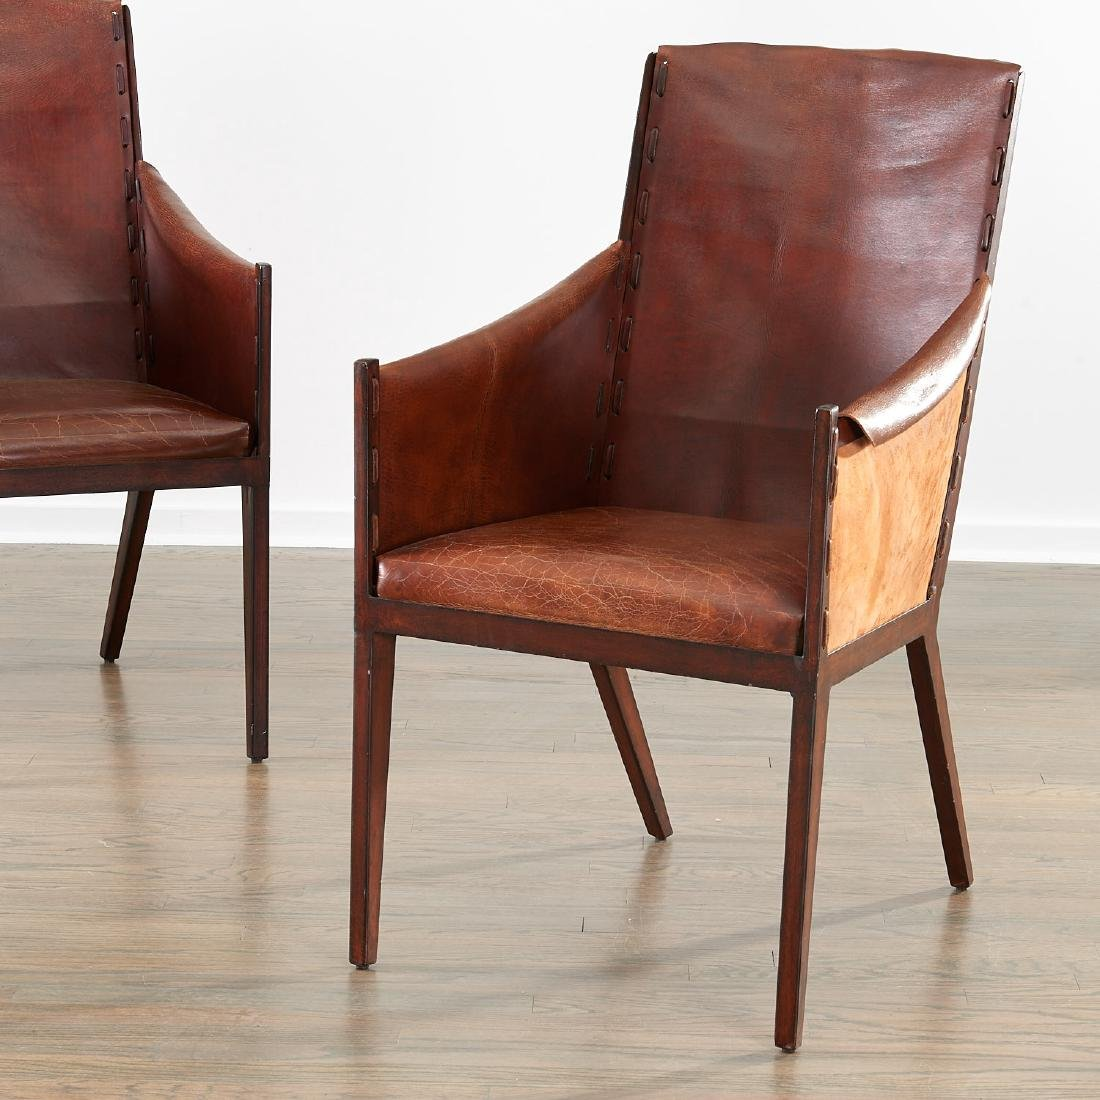 Pair Jean Michel Frank (after) leather chairs